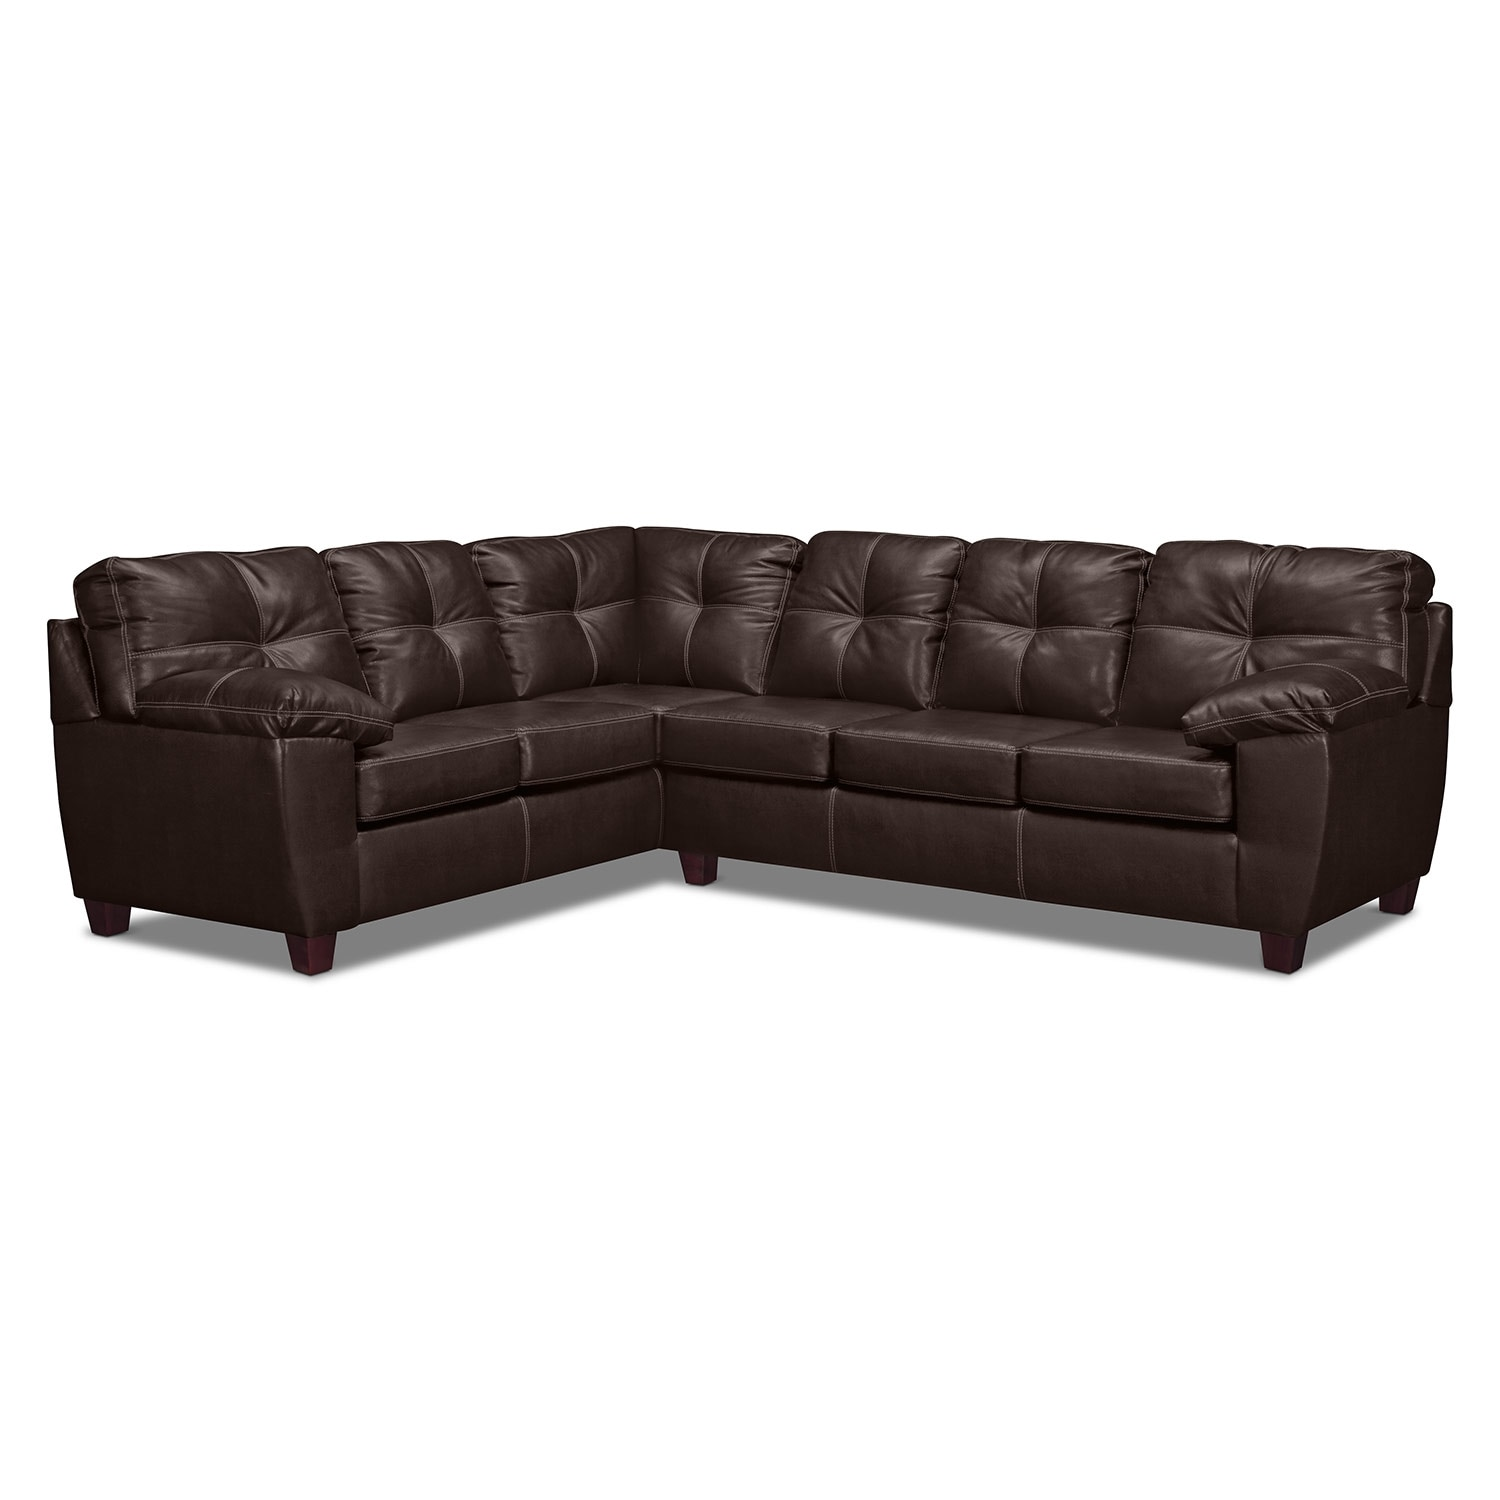 Rialto 2-Piece Sectional with Right-Facing Innerspring Sleeper - Brown